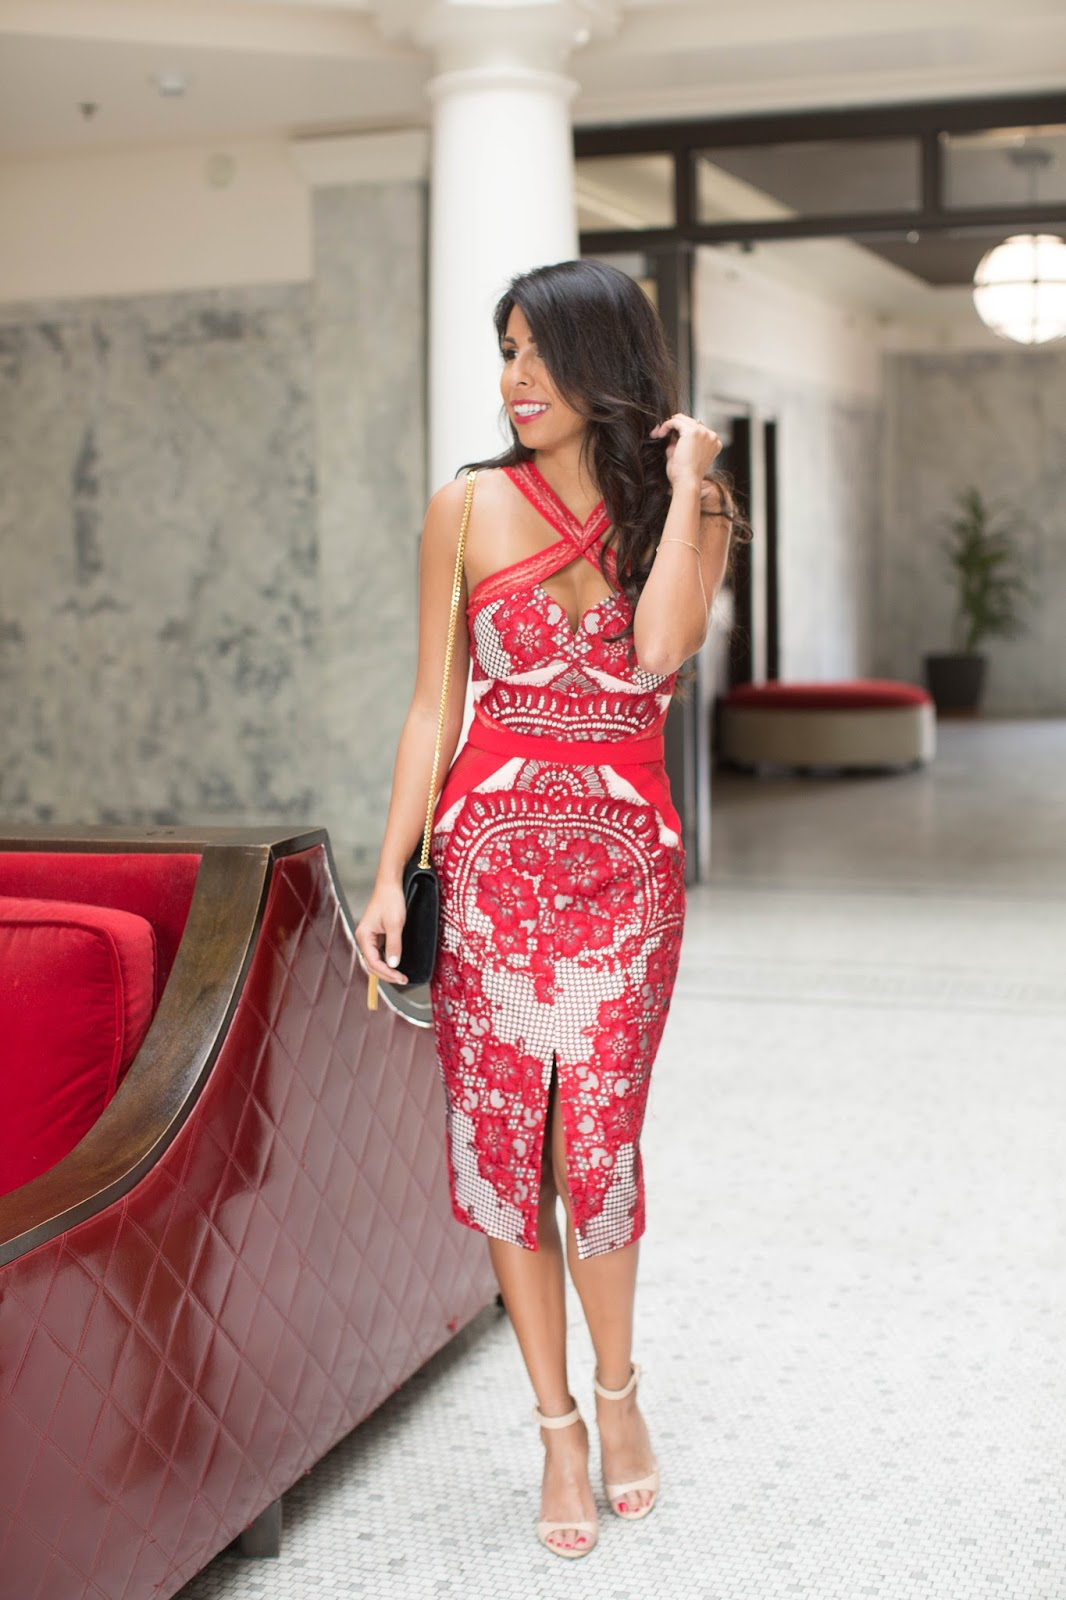 how to wear red lace dress, valentine's day outfit ideas, three floor dress